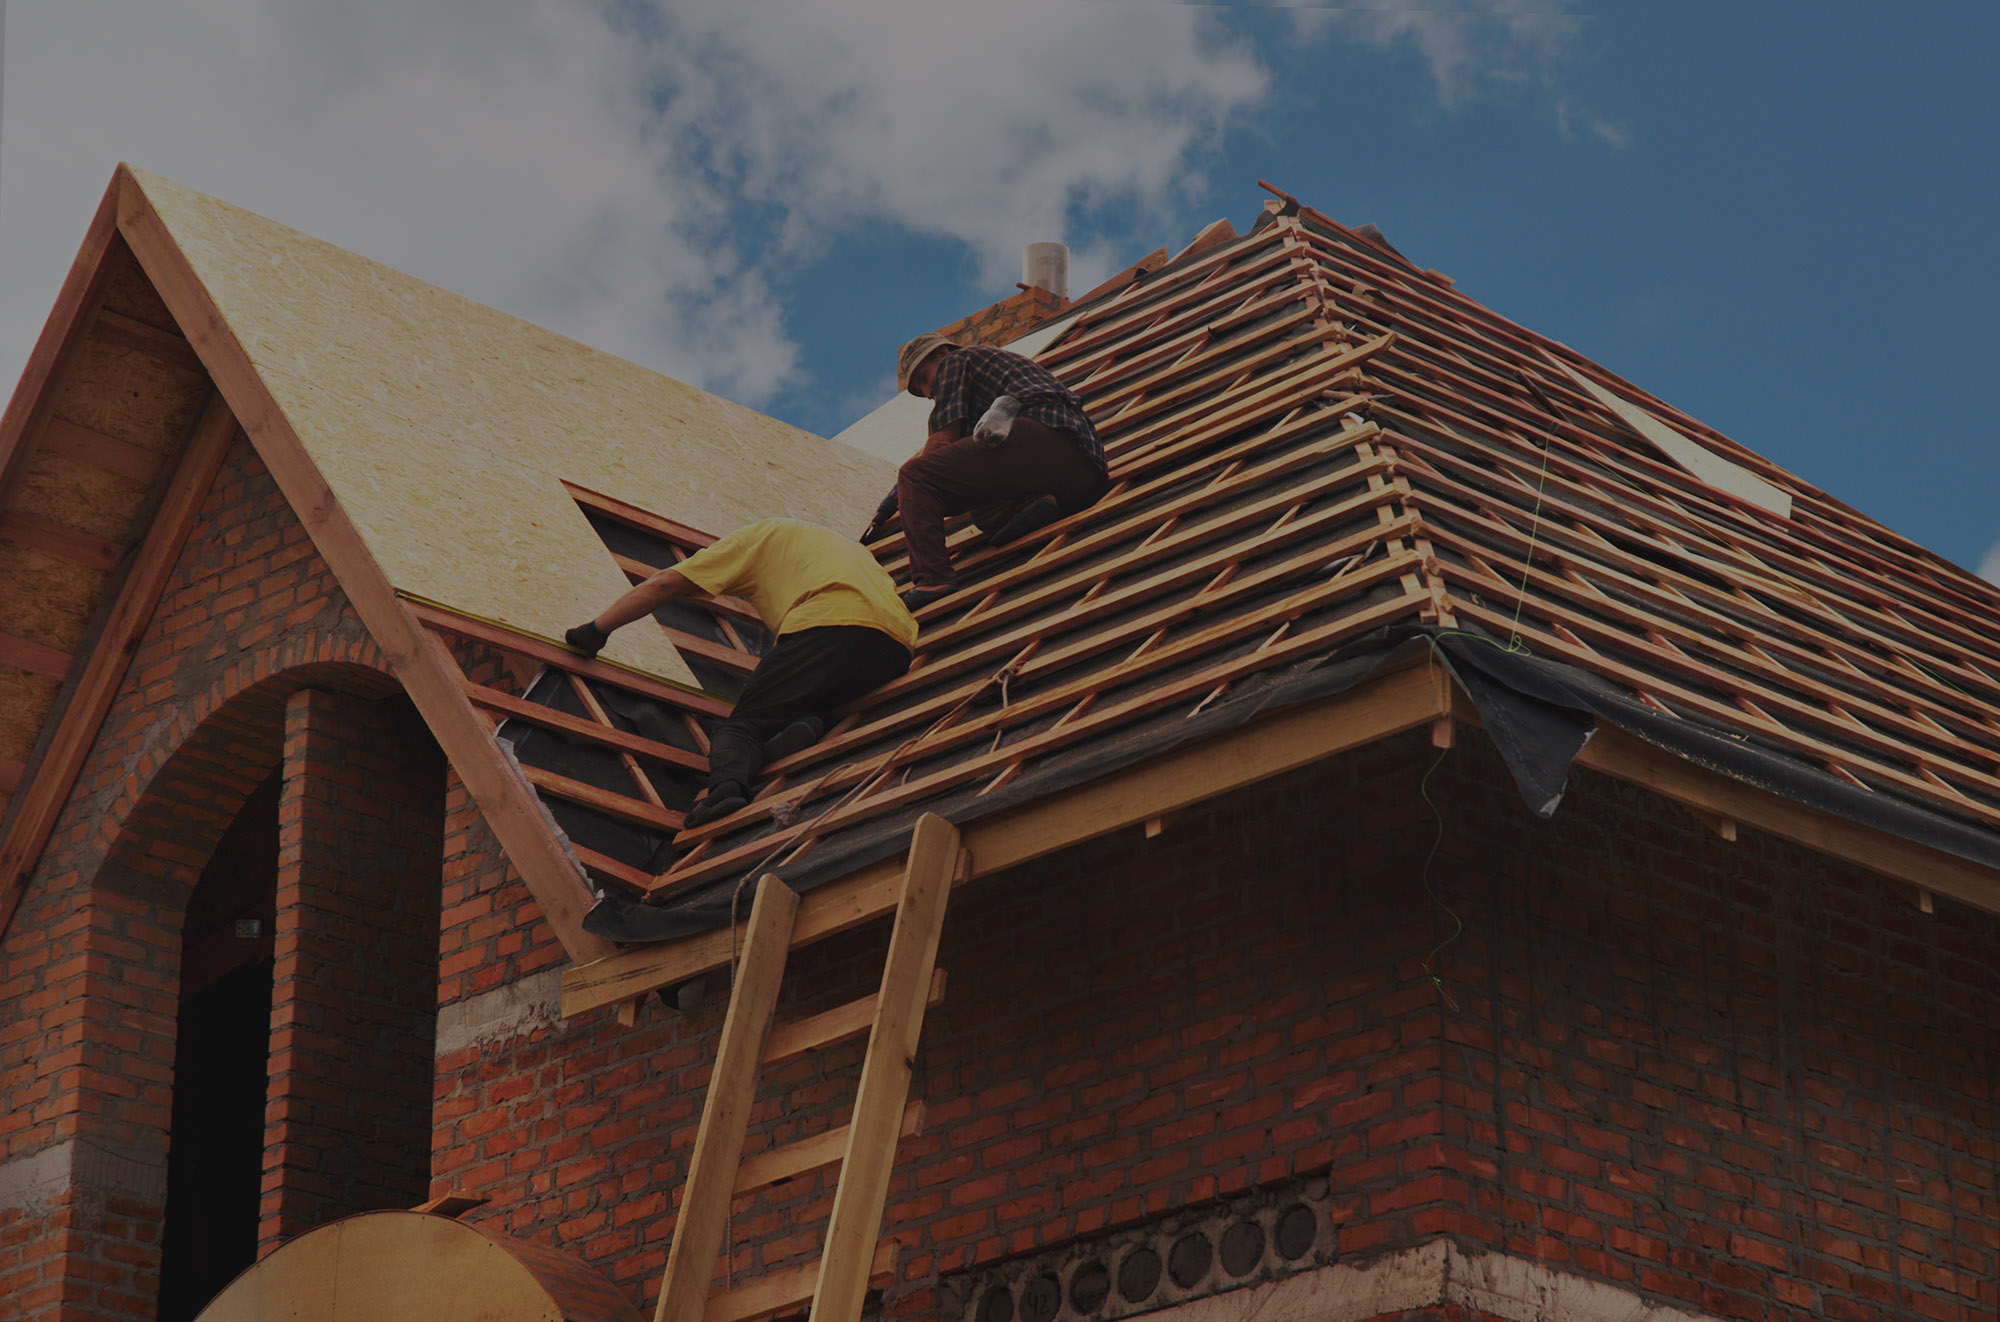 5ddef6d7e85f2a38f4fcd411_One Click Code Roof Workers Background